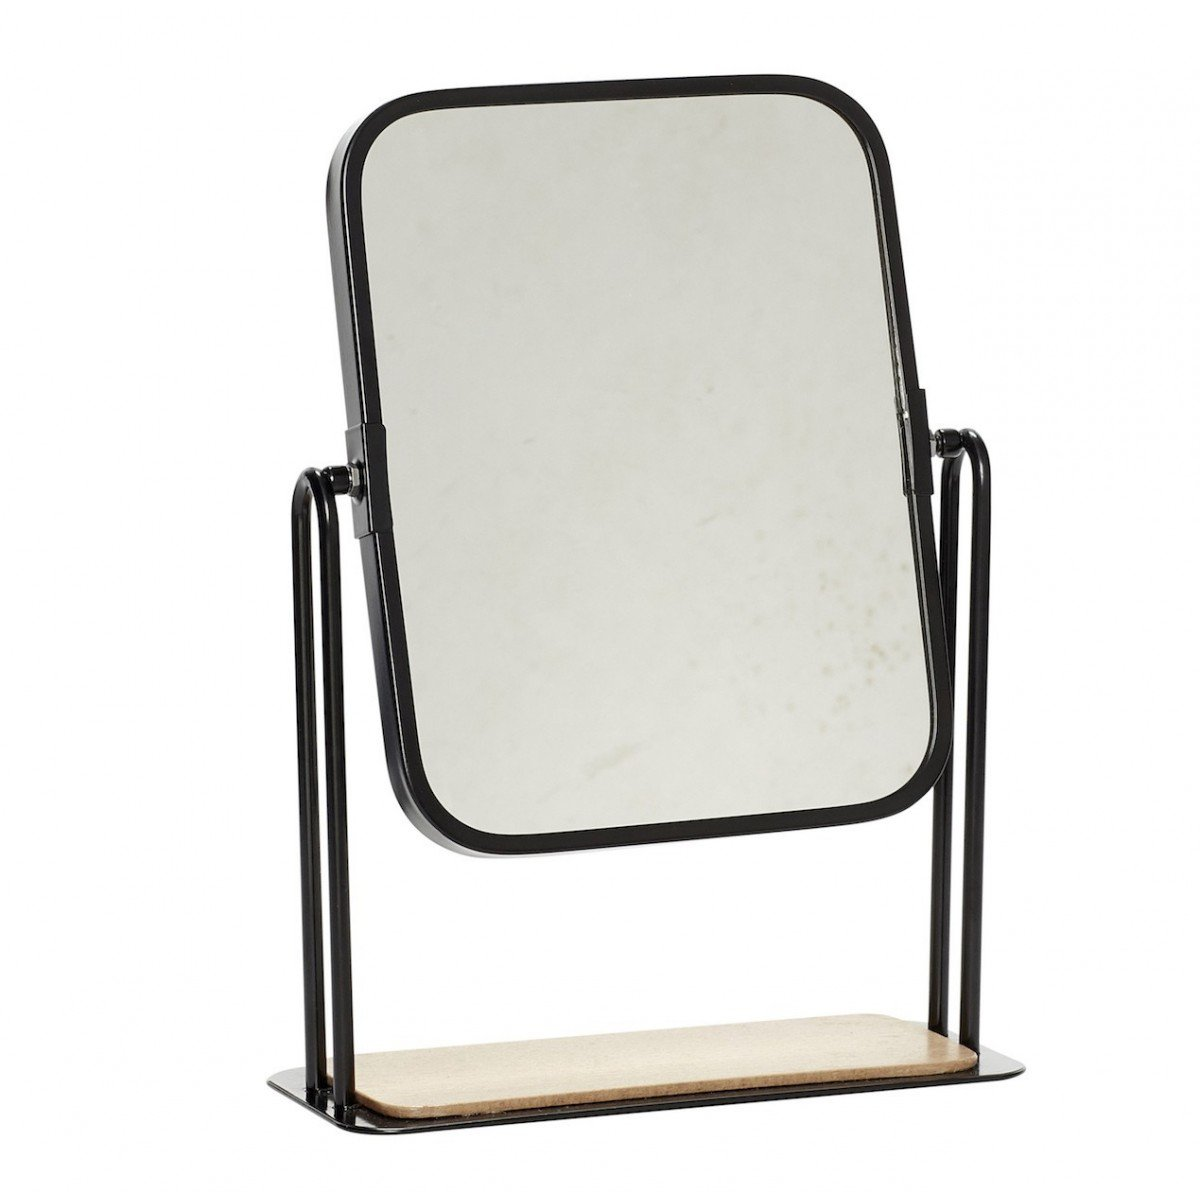 Miroir de table rectangulaire noir h bsch for The miroir noir